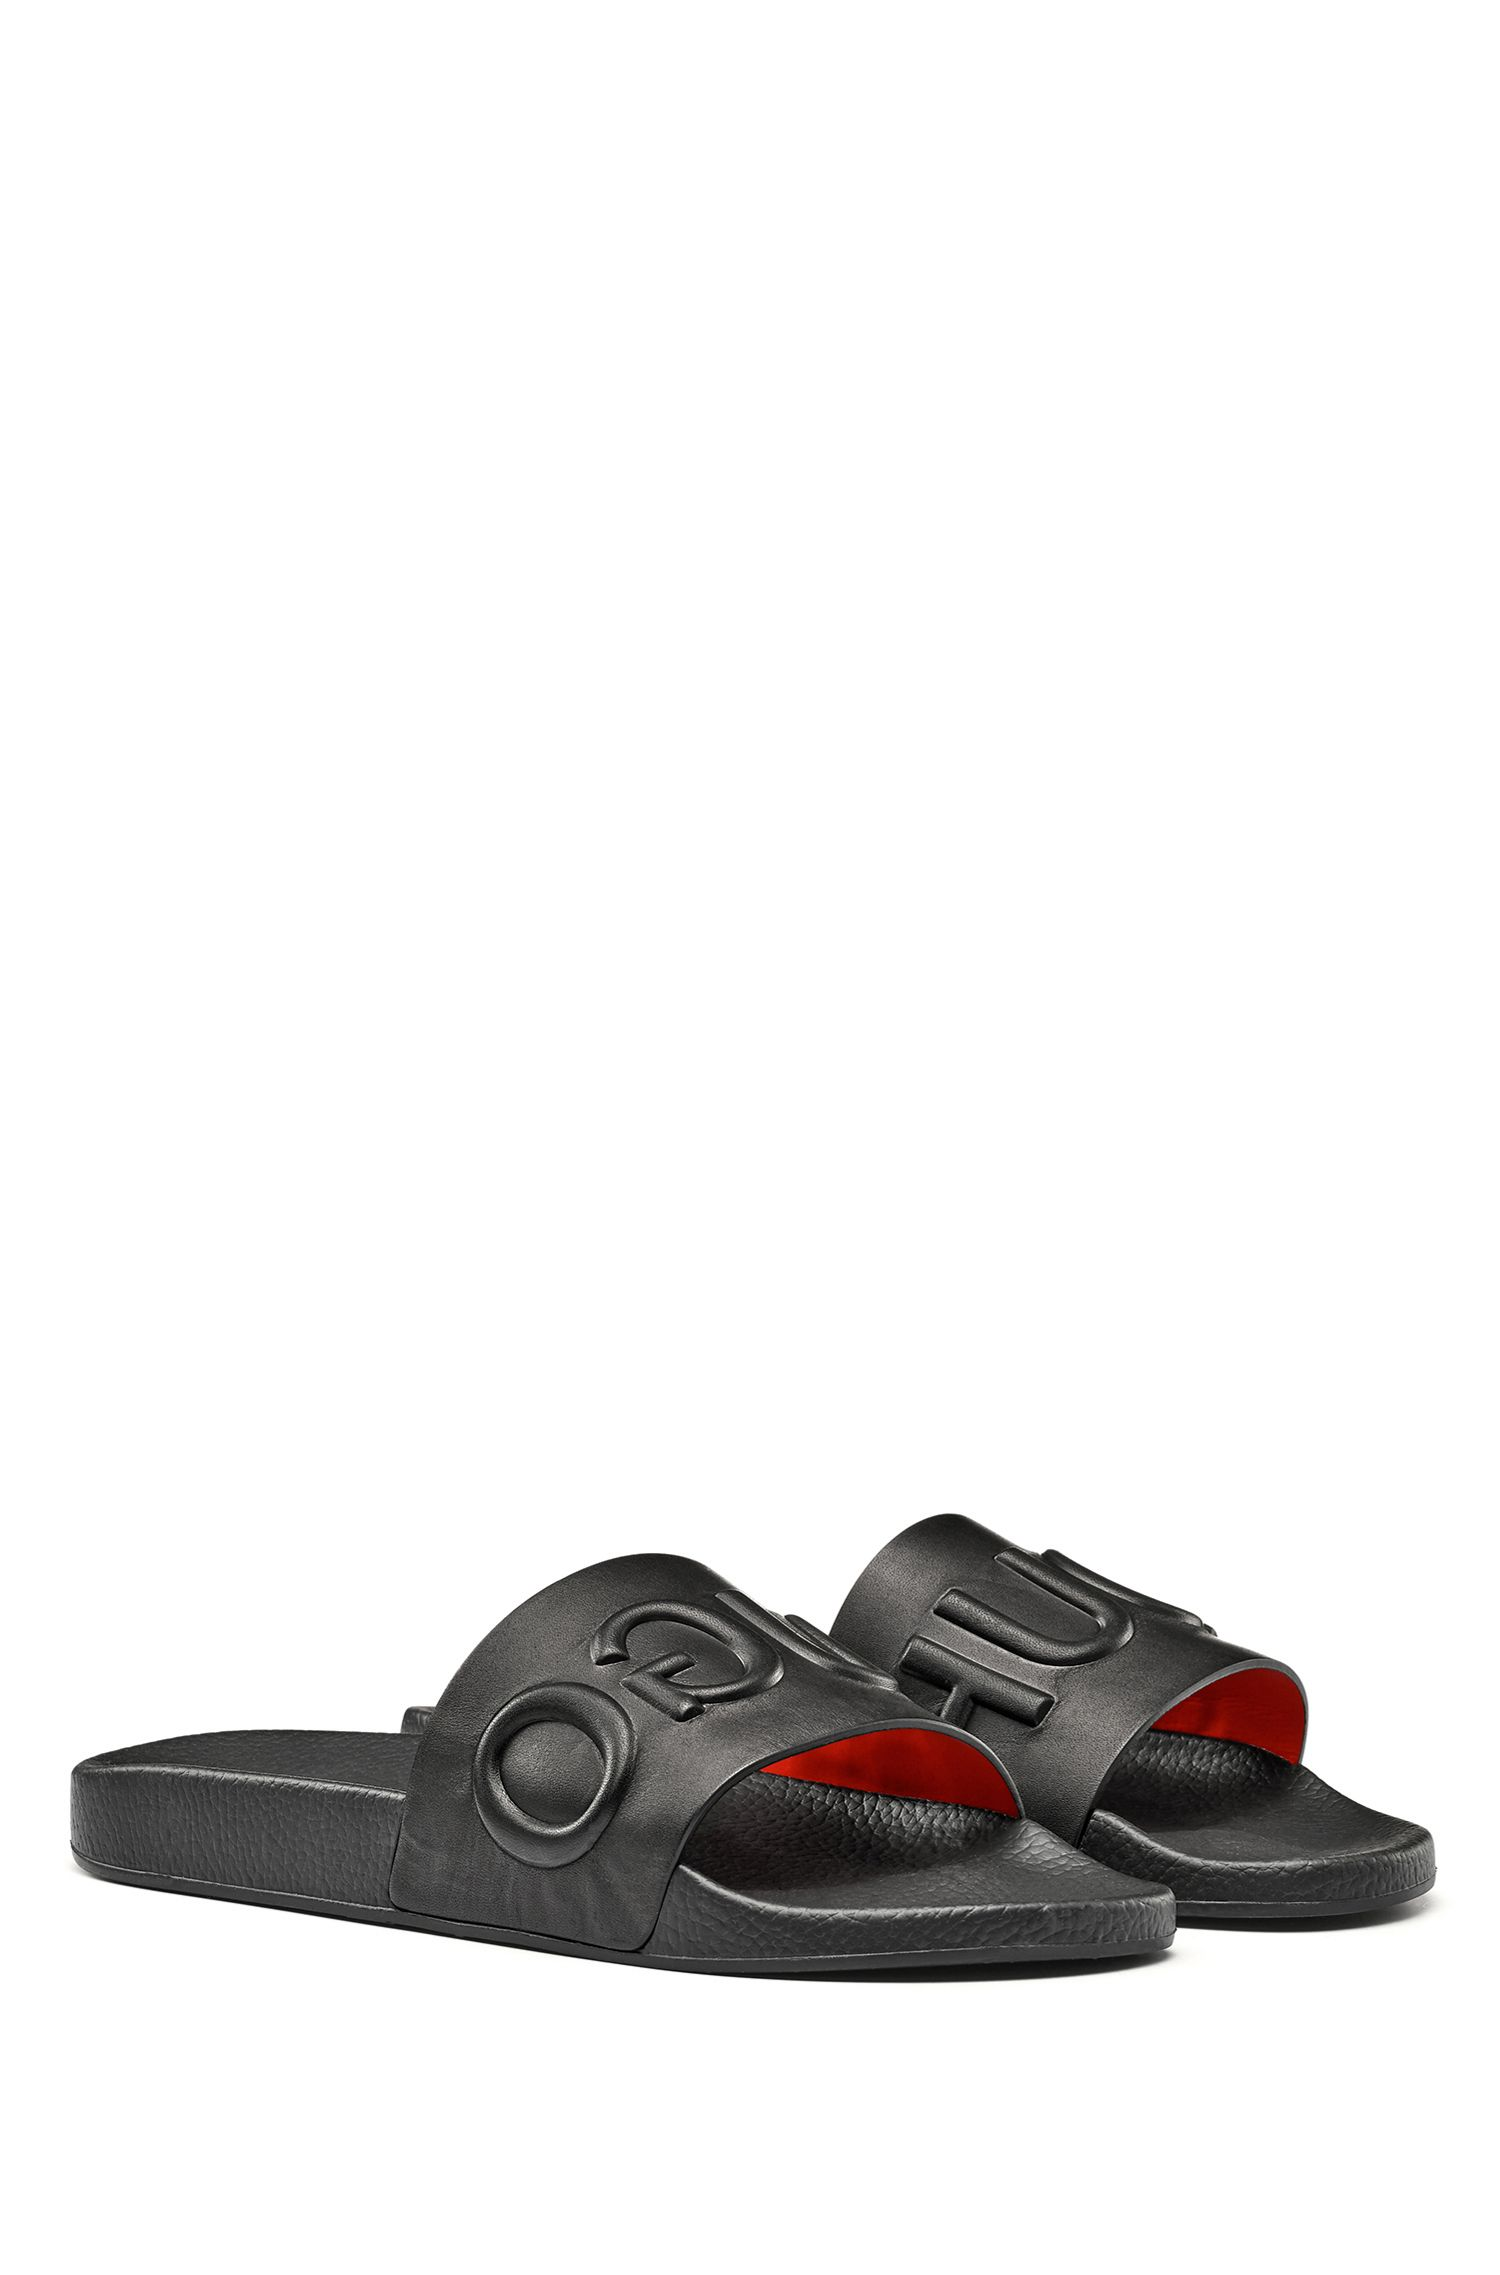 Calf-leather slide sandals with raised logo HUGO BOSS